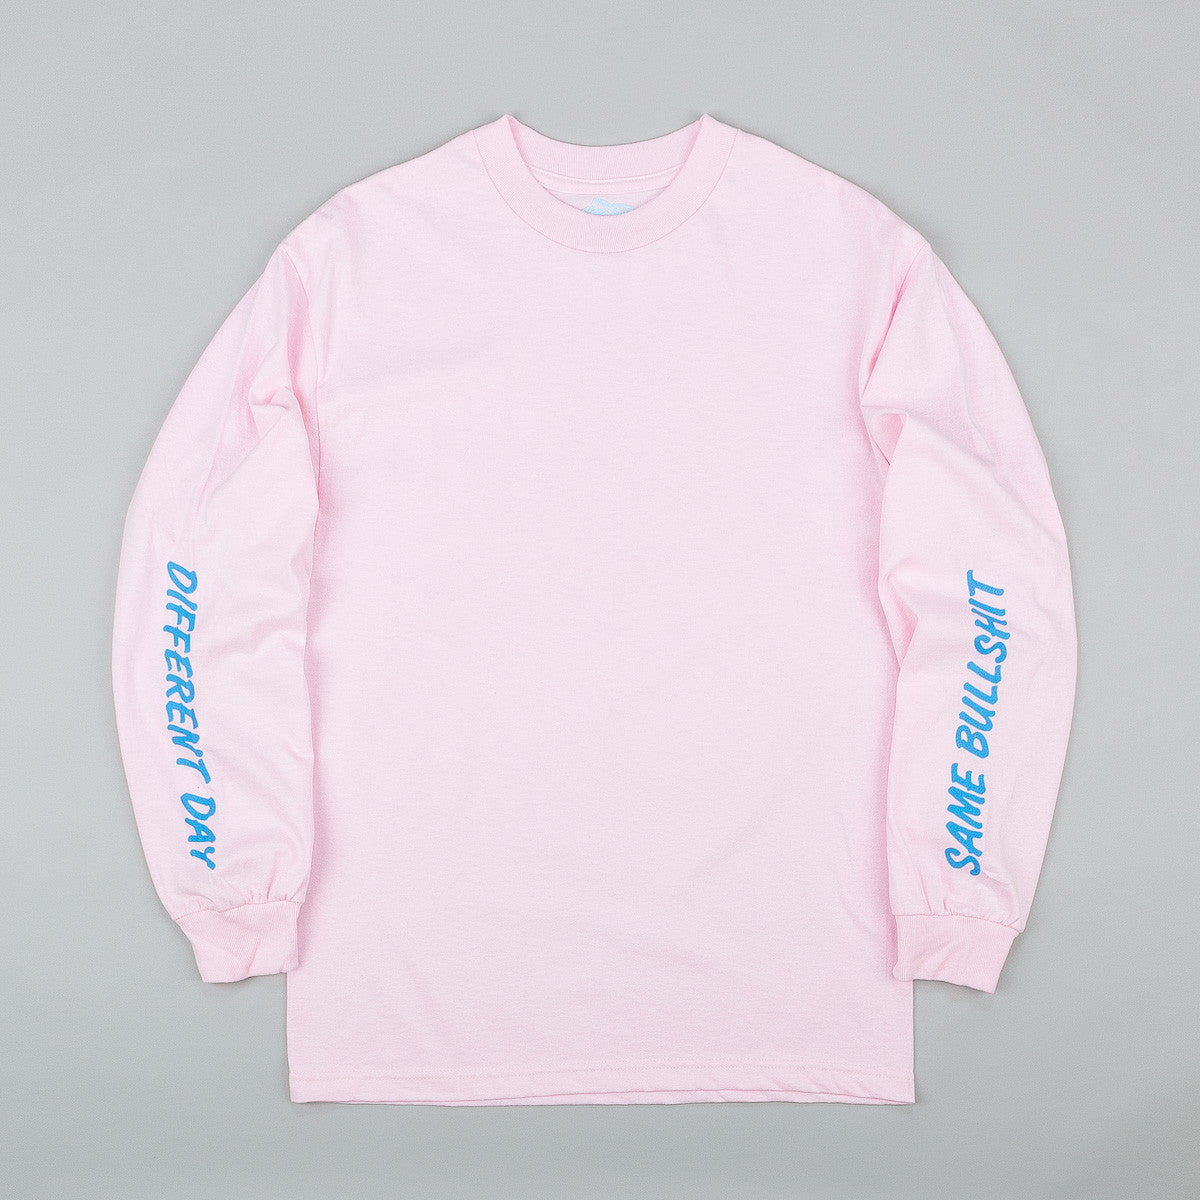 Managers Special Same Bullshit Different Day Long Sleeve T-Shirt - Pink